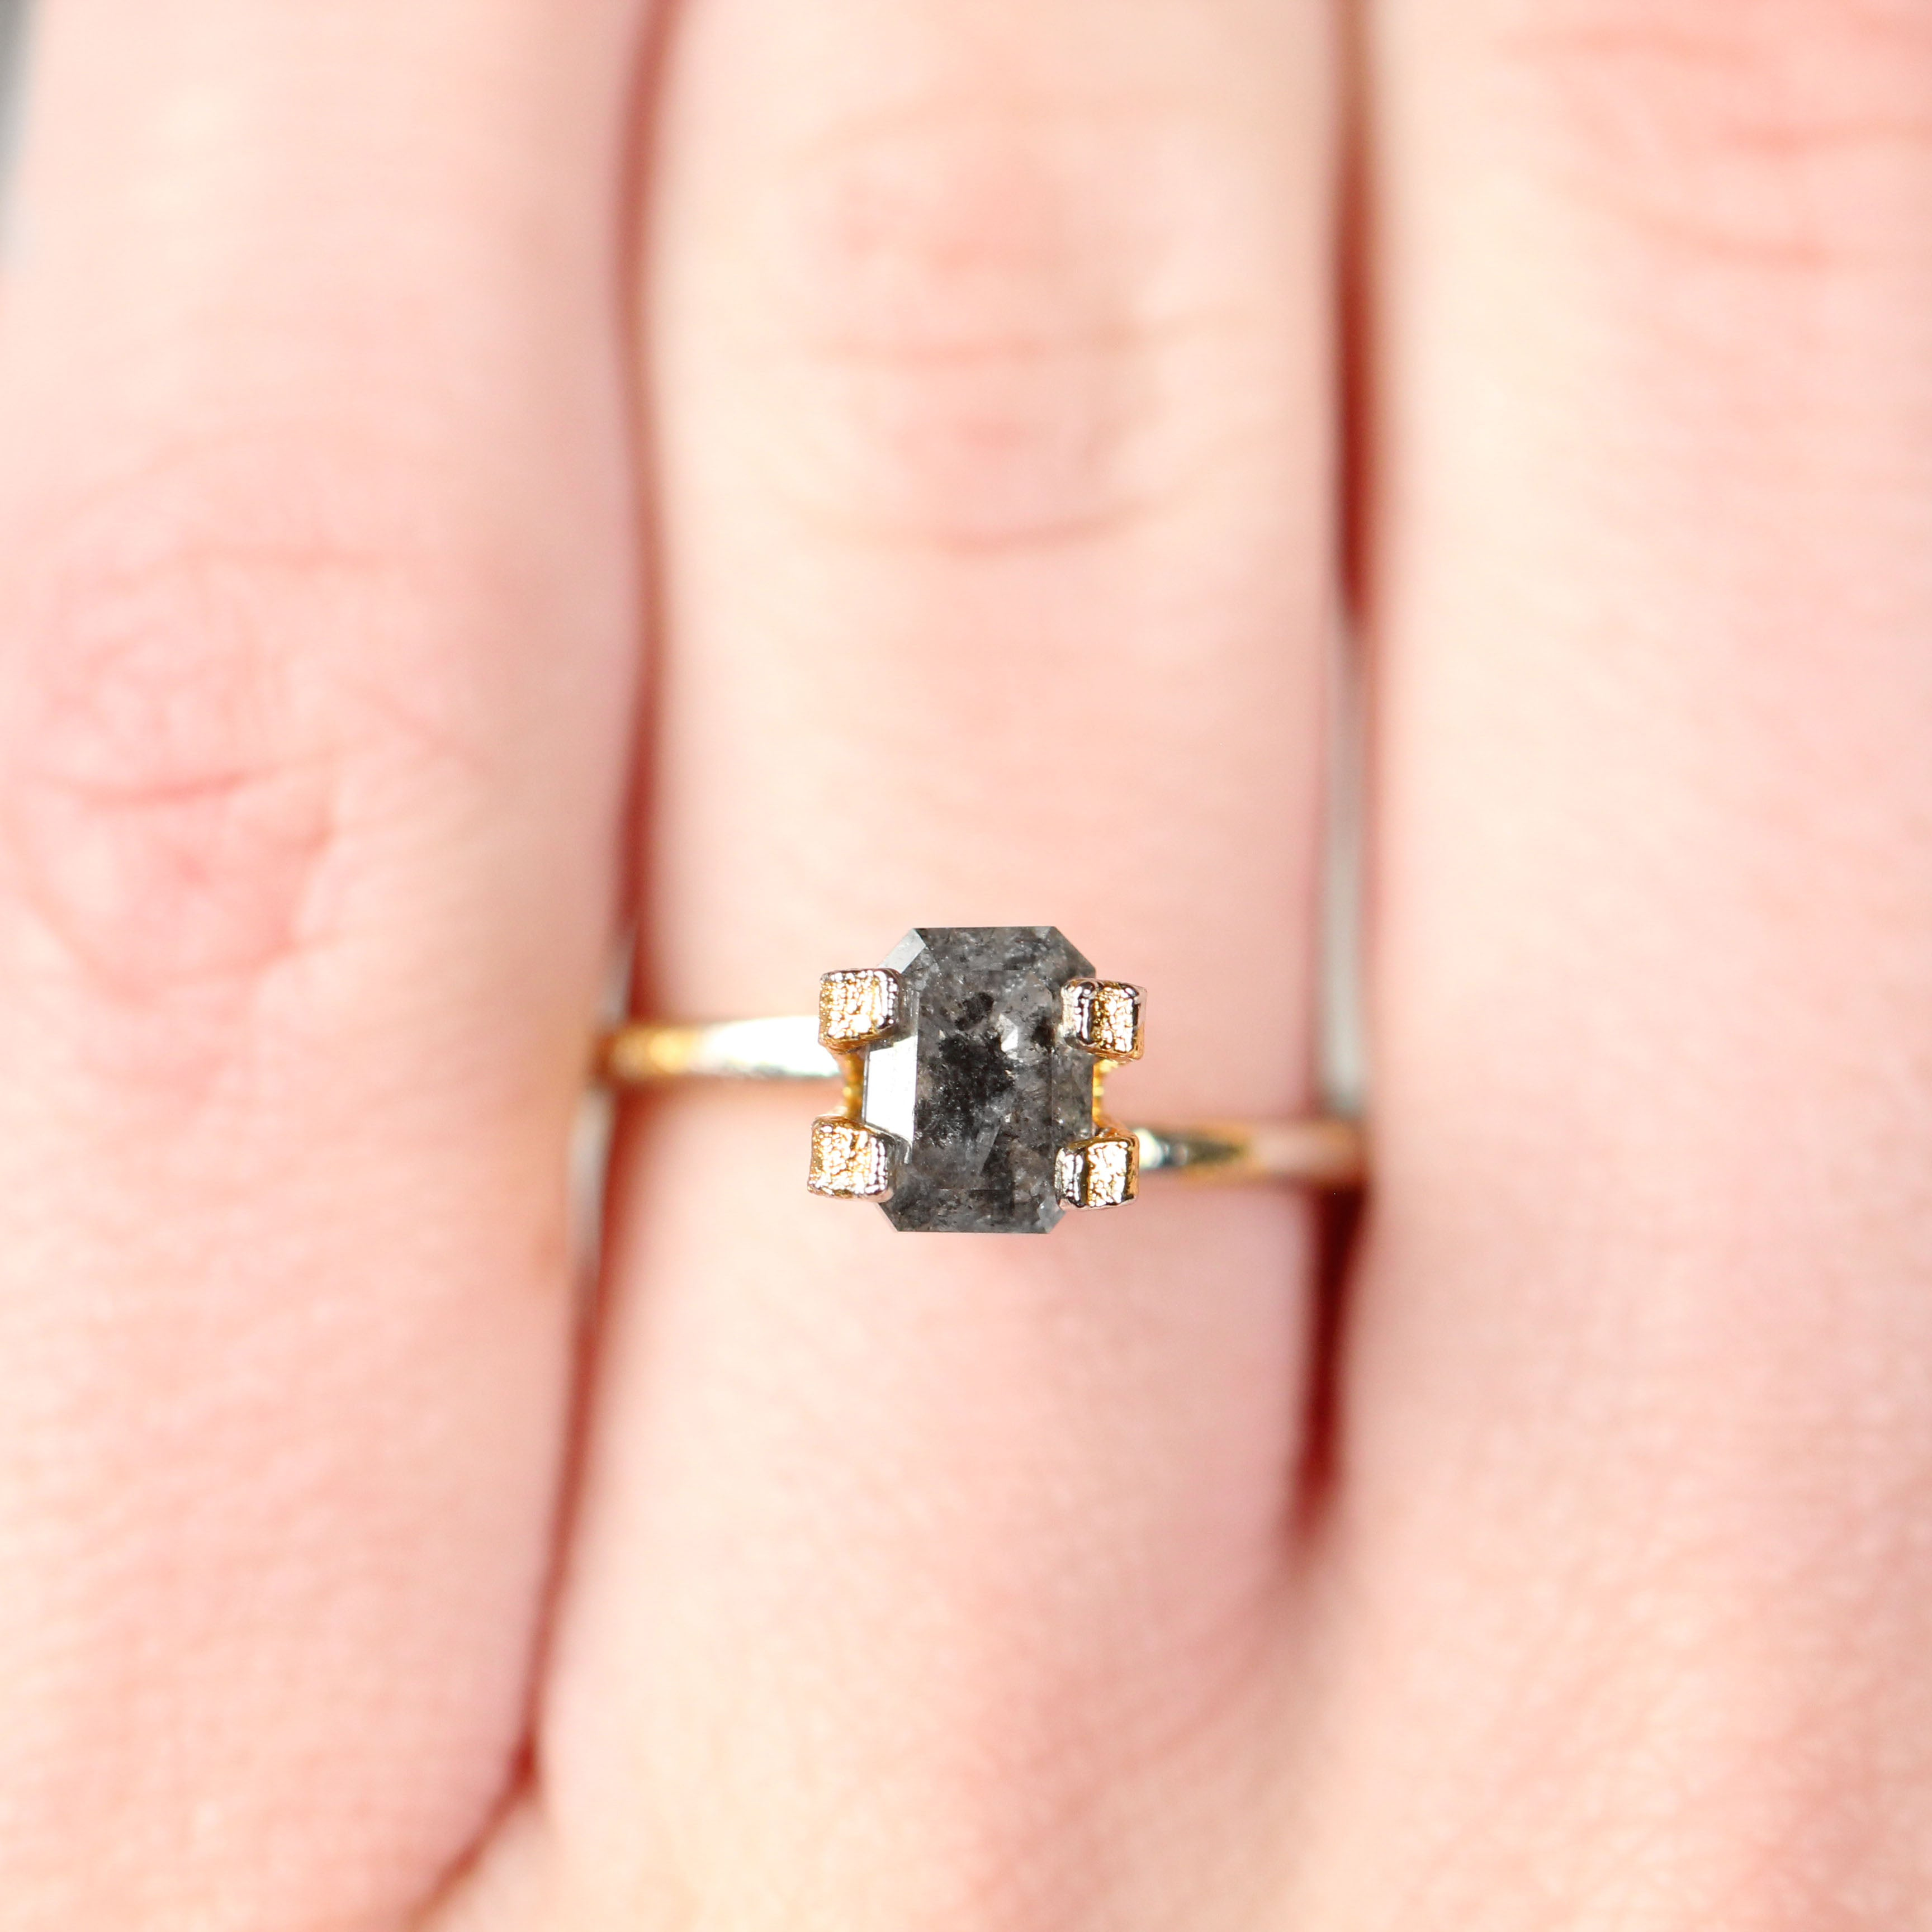 .94 Carat Emerald Cut Celestial Diamond for Custom Work - Inventory Code EBG94 - Salt & Pepper Celestial Diamond Engagement Rings and Wedding Bands  by Midwinter Co.